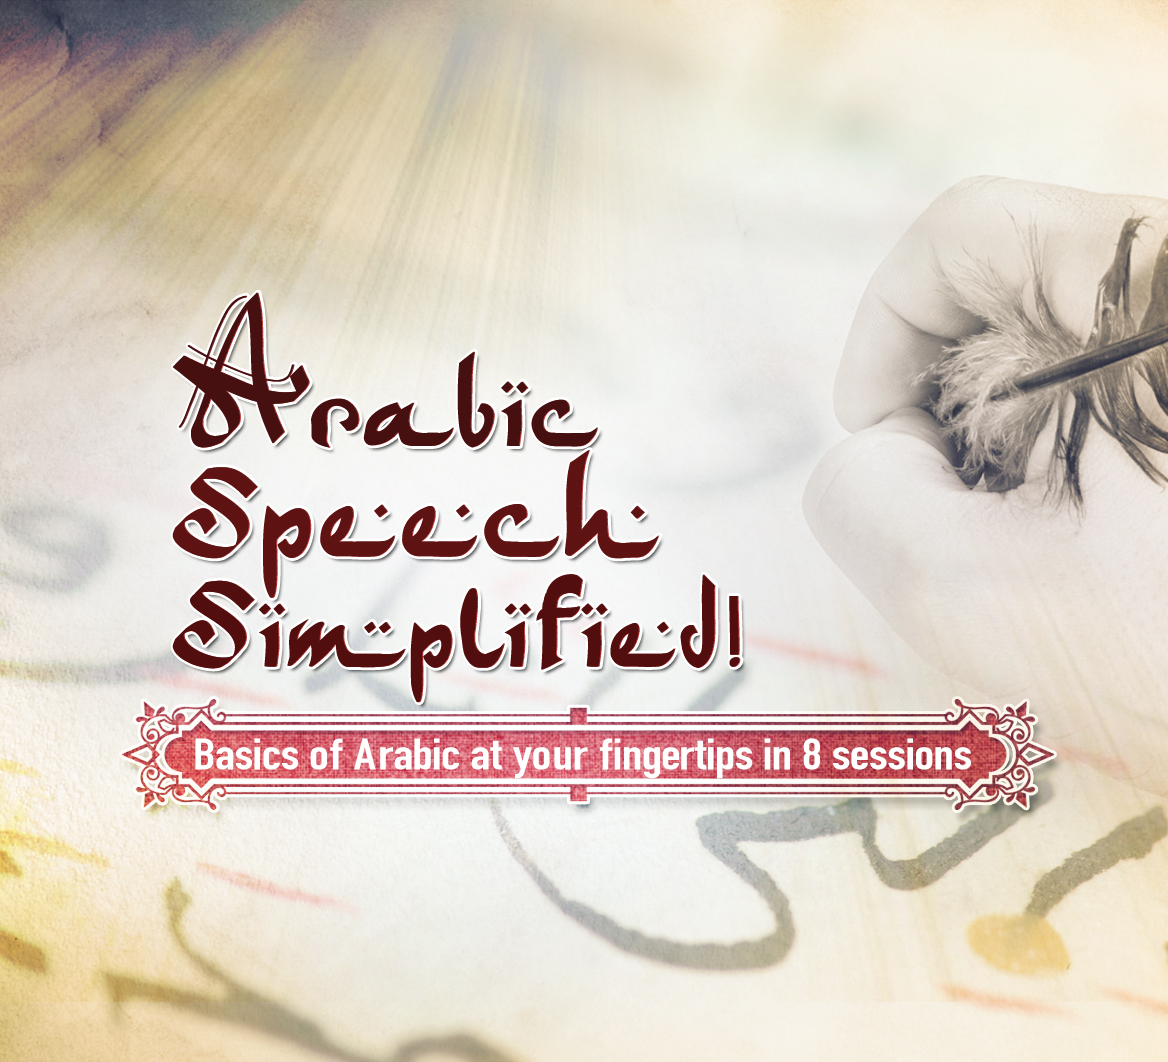 Arabic Speech Simplified! (ARS 100)